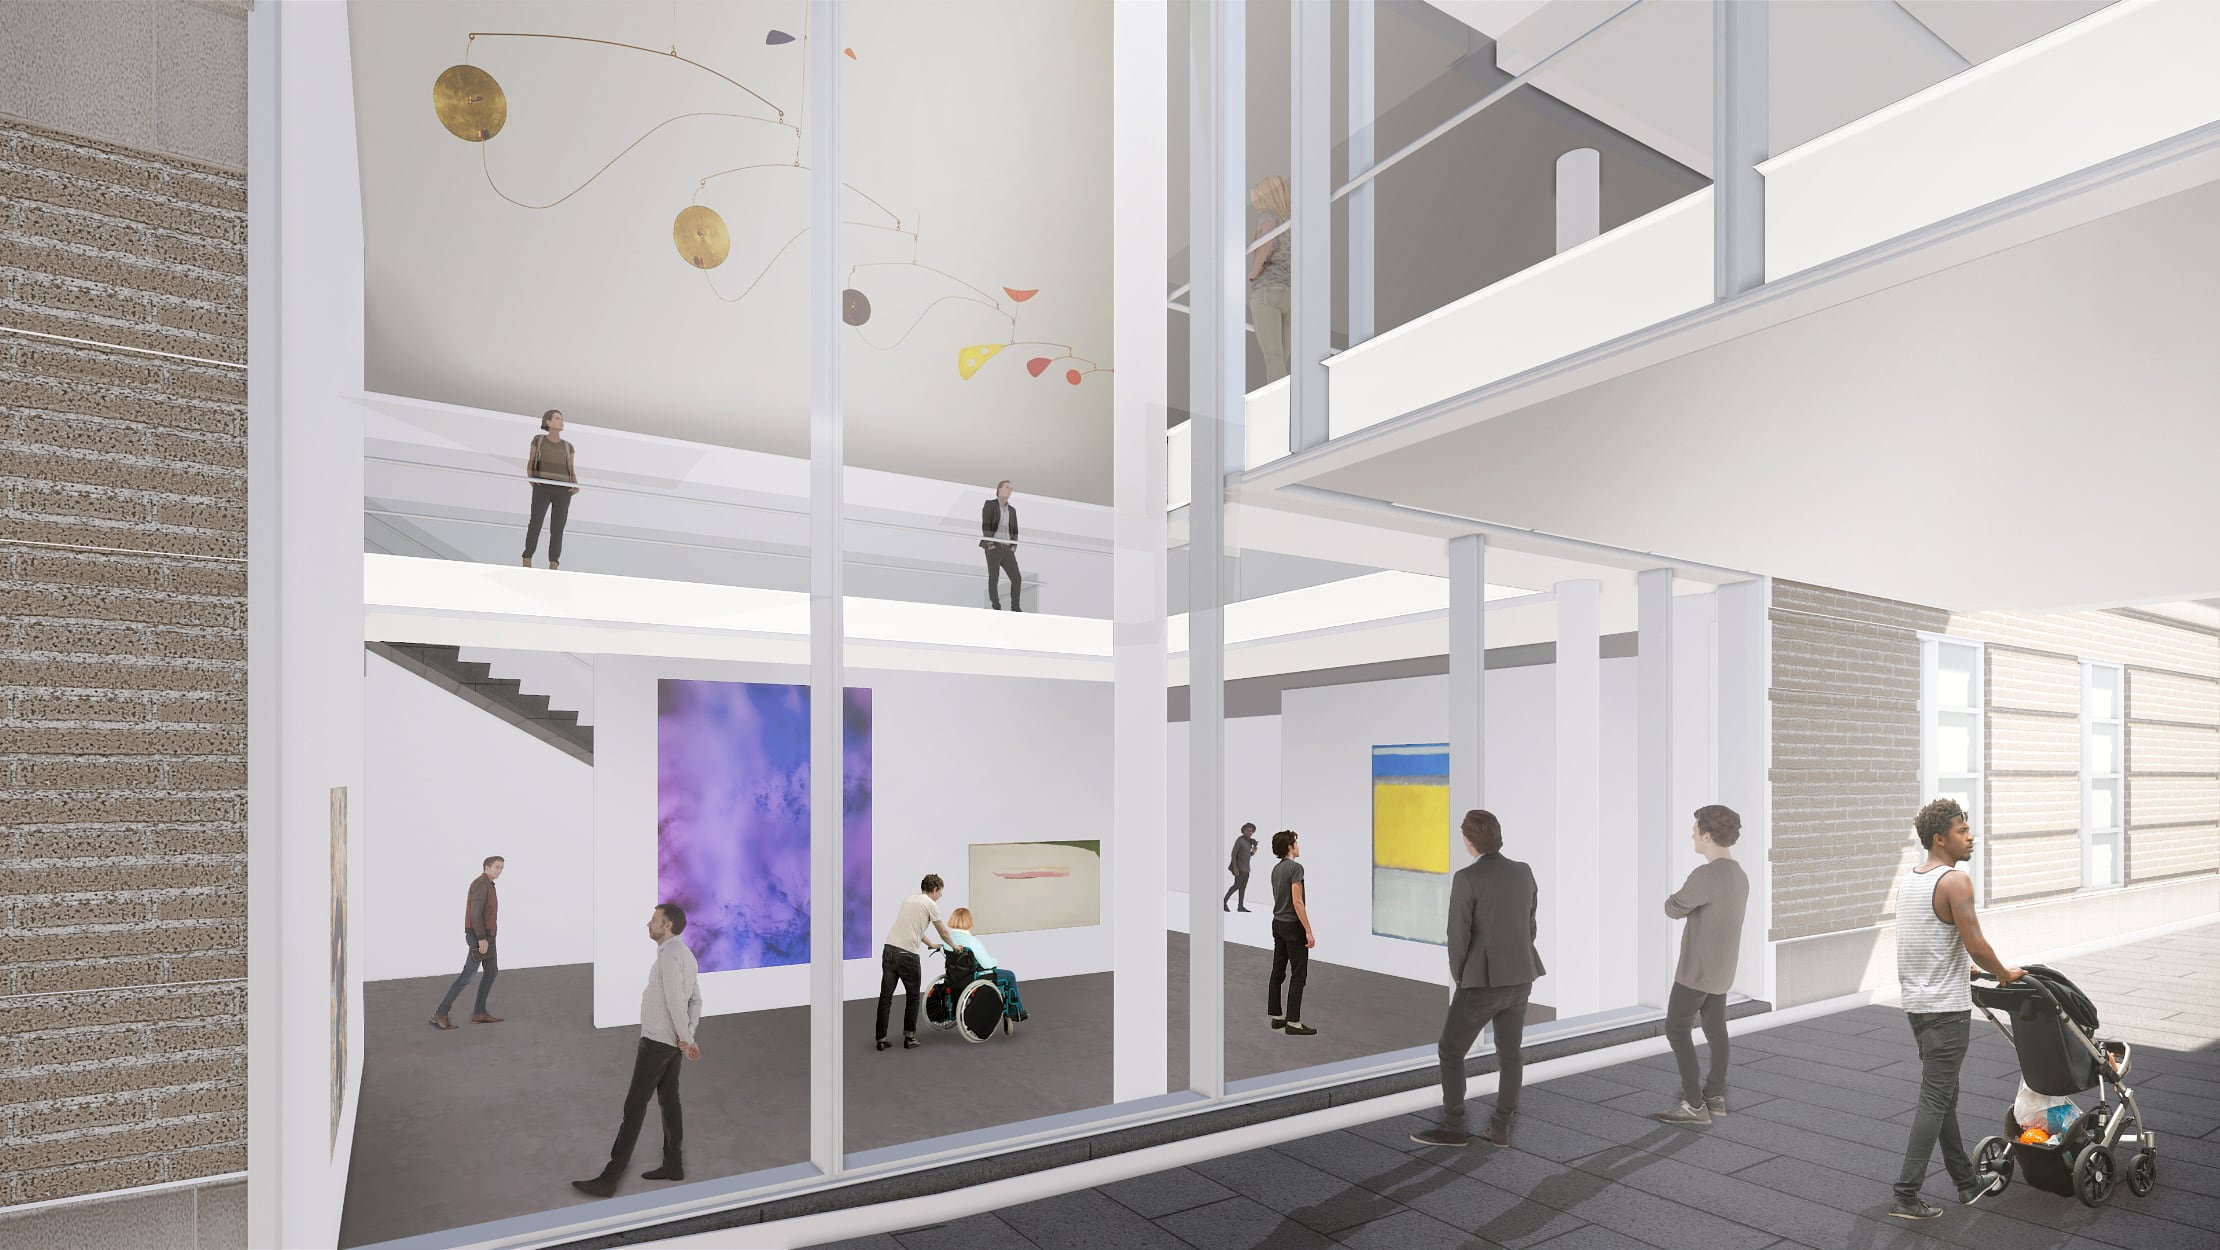 Architectural drawing of the current passage gallery design concept.